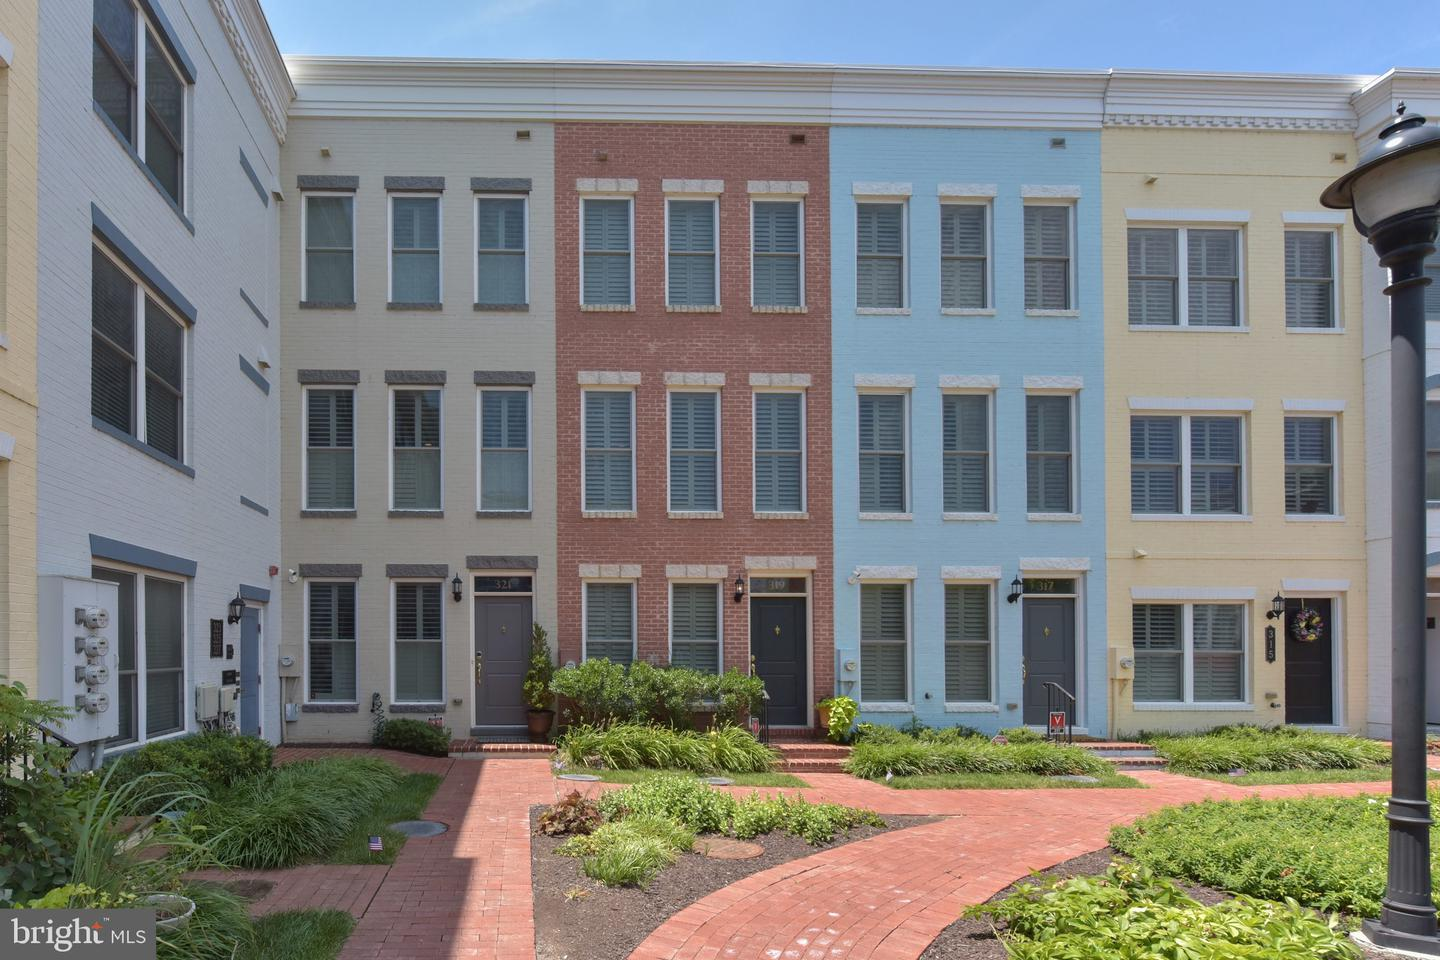 Single Family for Sale at 319 L St SE 319 L St SE Washington, District Of Columbia 20003 United States